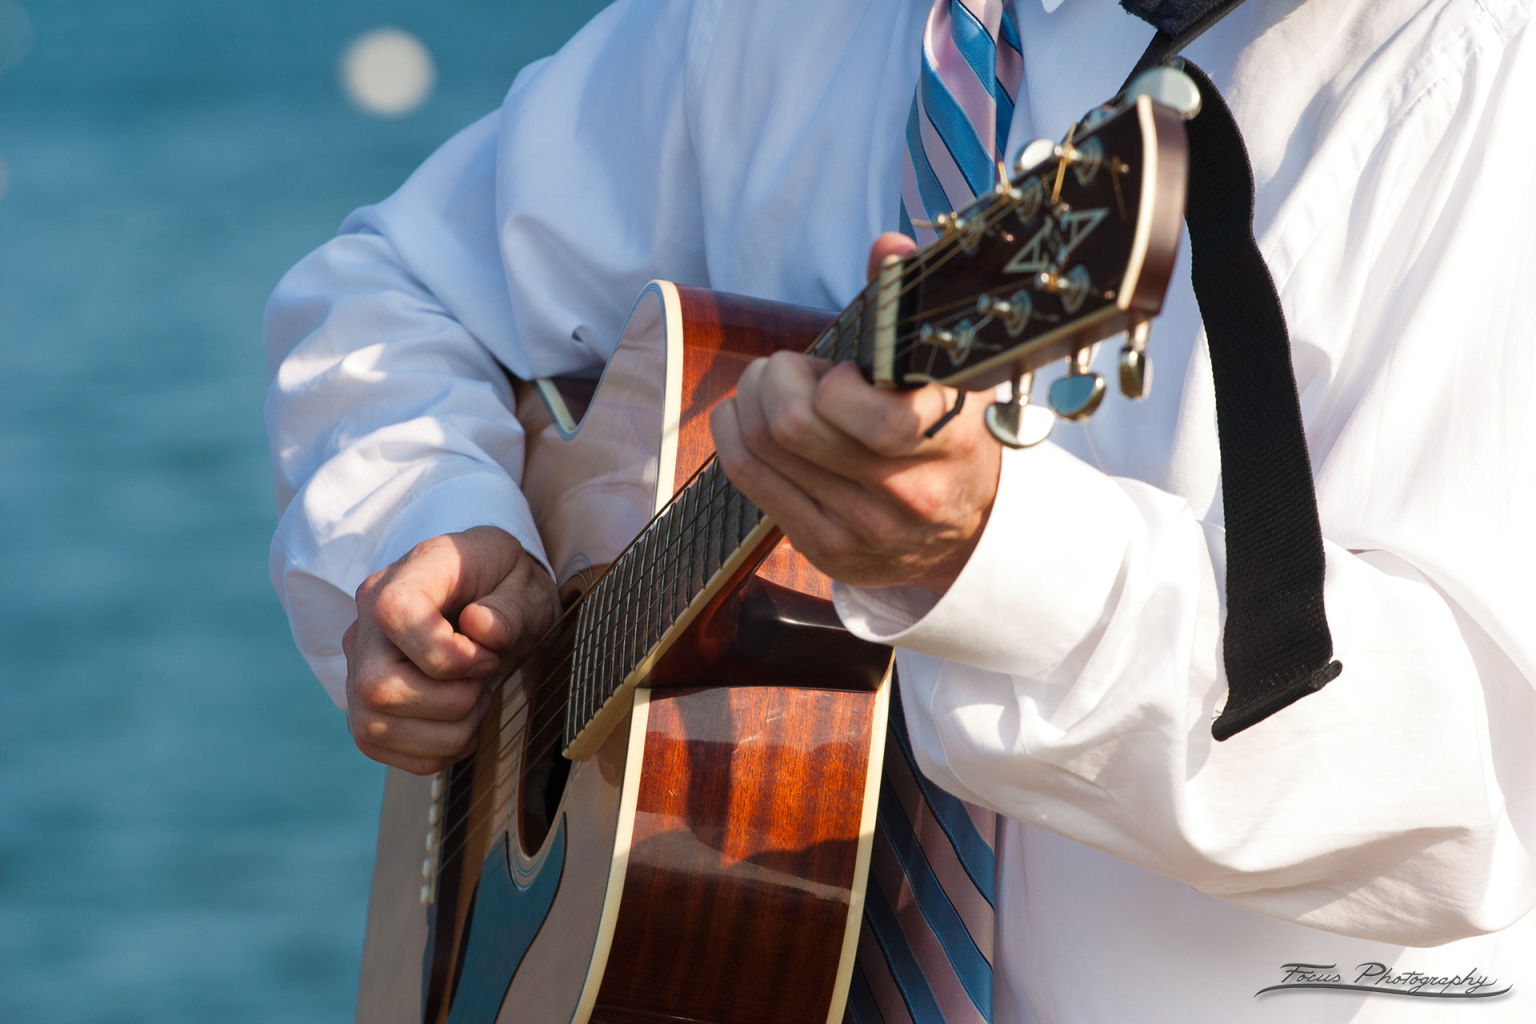 Playing guitar at Casco Bay Maine wedding